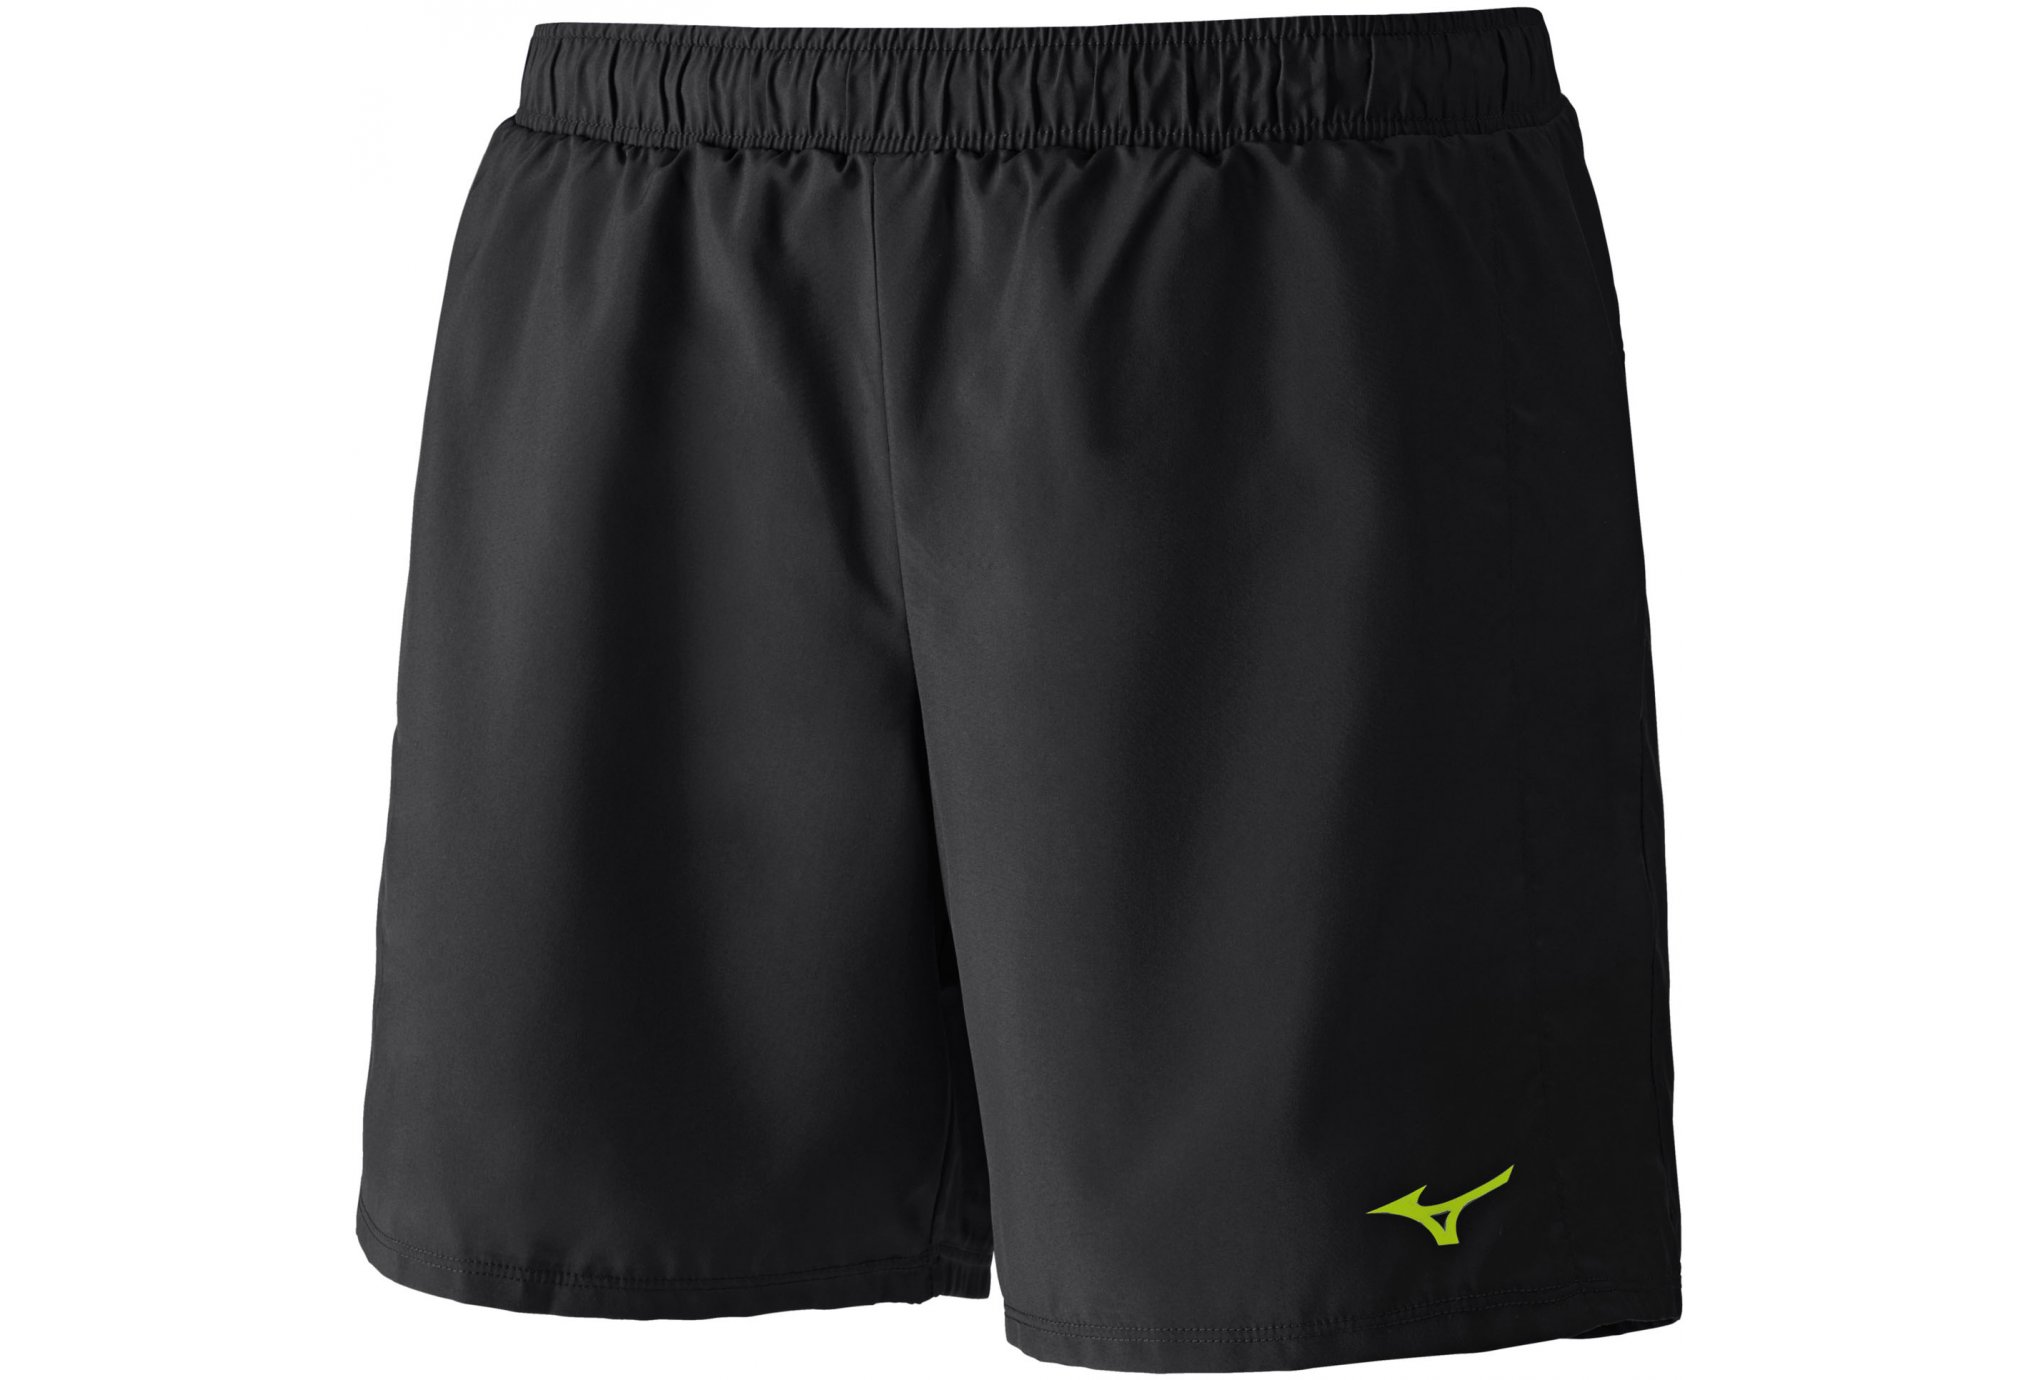 Mizuno Short DryLite Core Square 5.5 M vêtement running homme